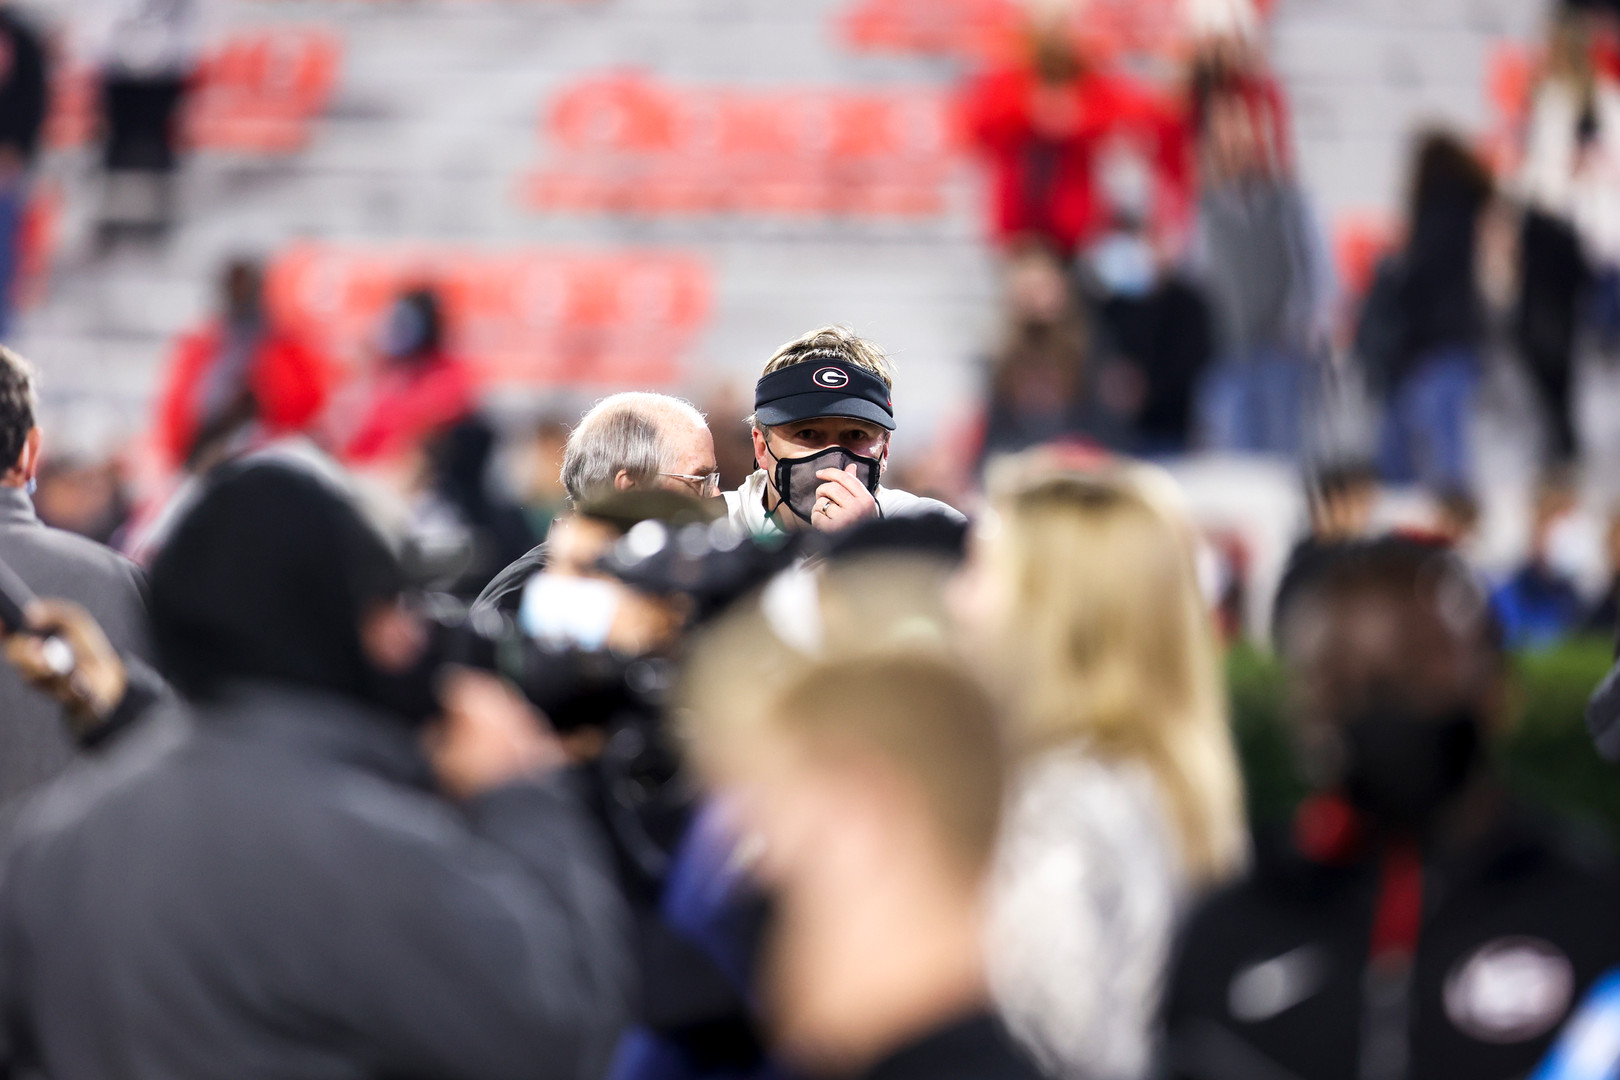 UGA head coach Kirby Smart leaves the field at the conclusion of the second half of the UGA versus Mississippi State football game in Athens, Georgia on Saturday, Nov. 21, 2020. UGA won the game 31-24.